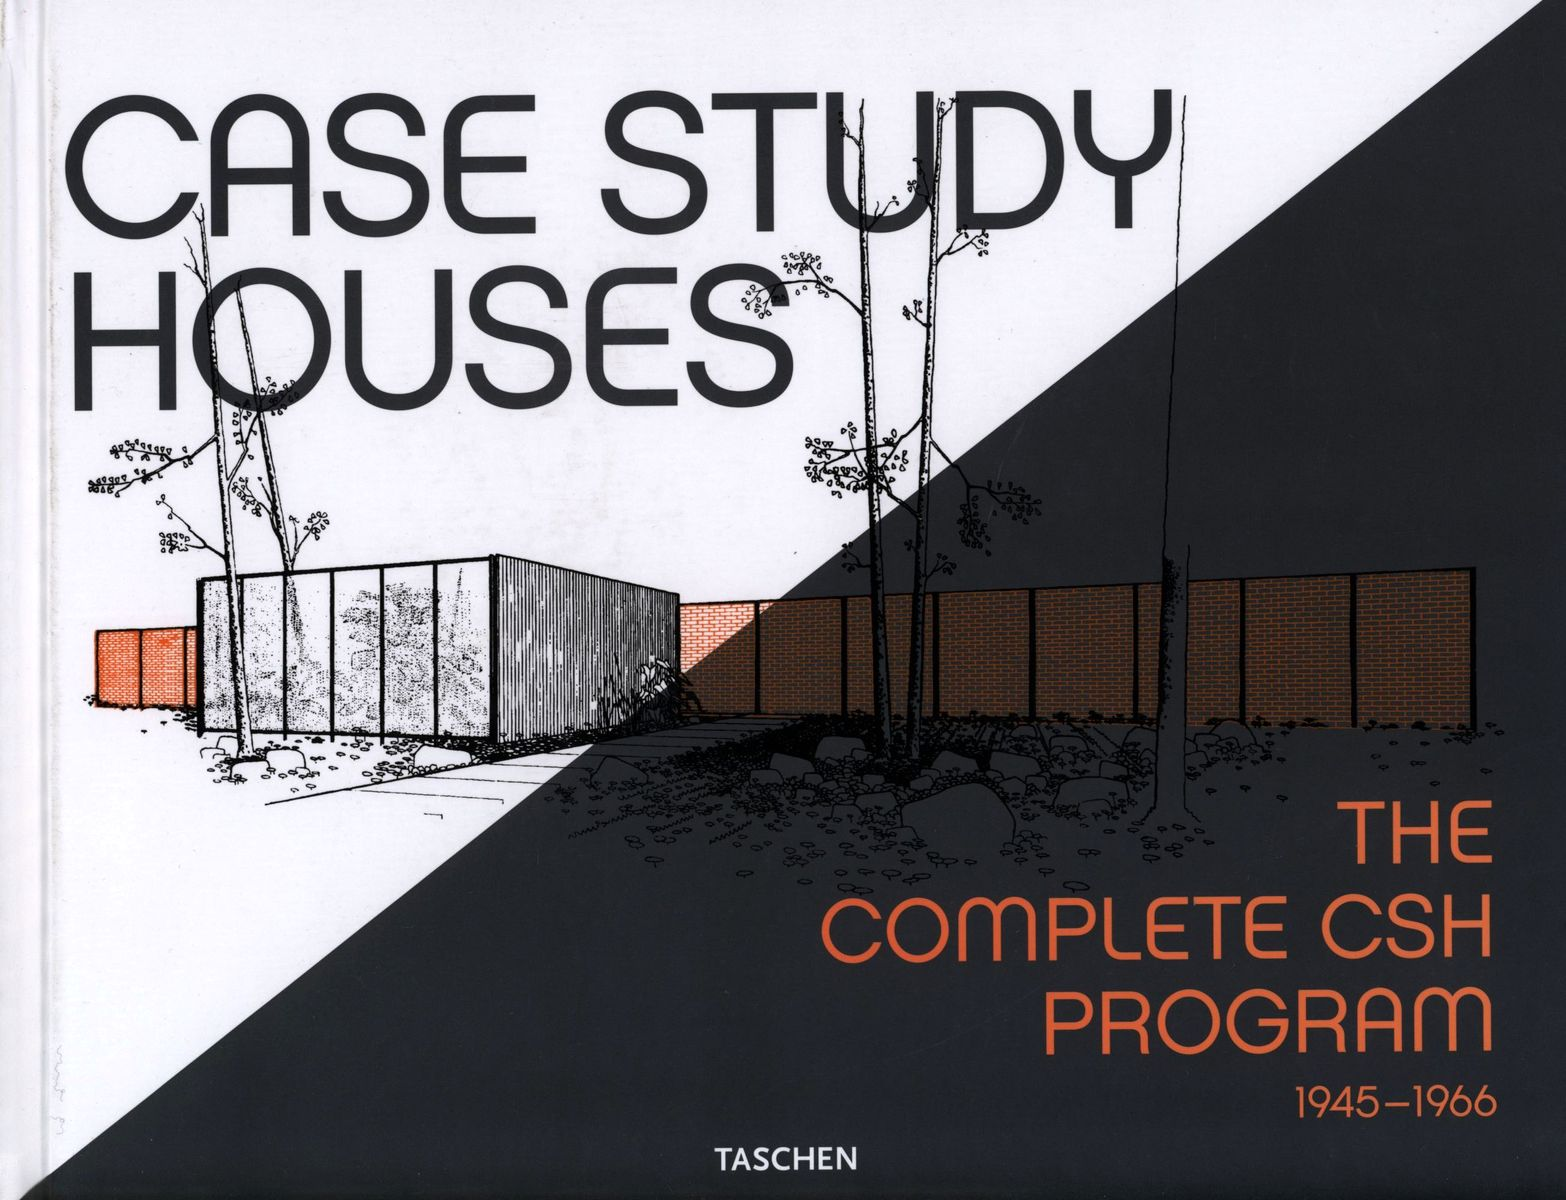 Case Study Houses. The Complete CSH Program 1945-1966 по 2 500.00 руб от изд. Taschen